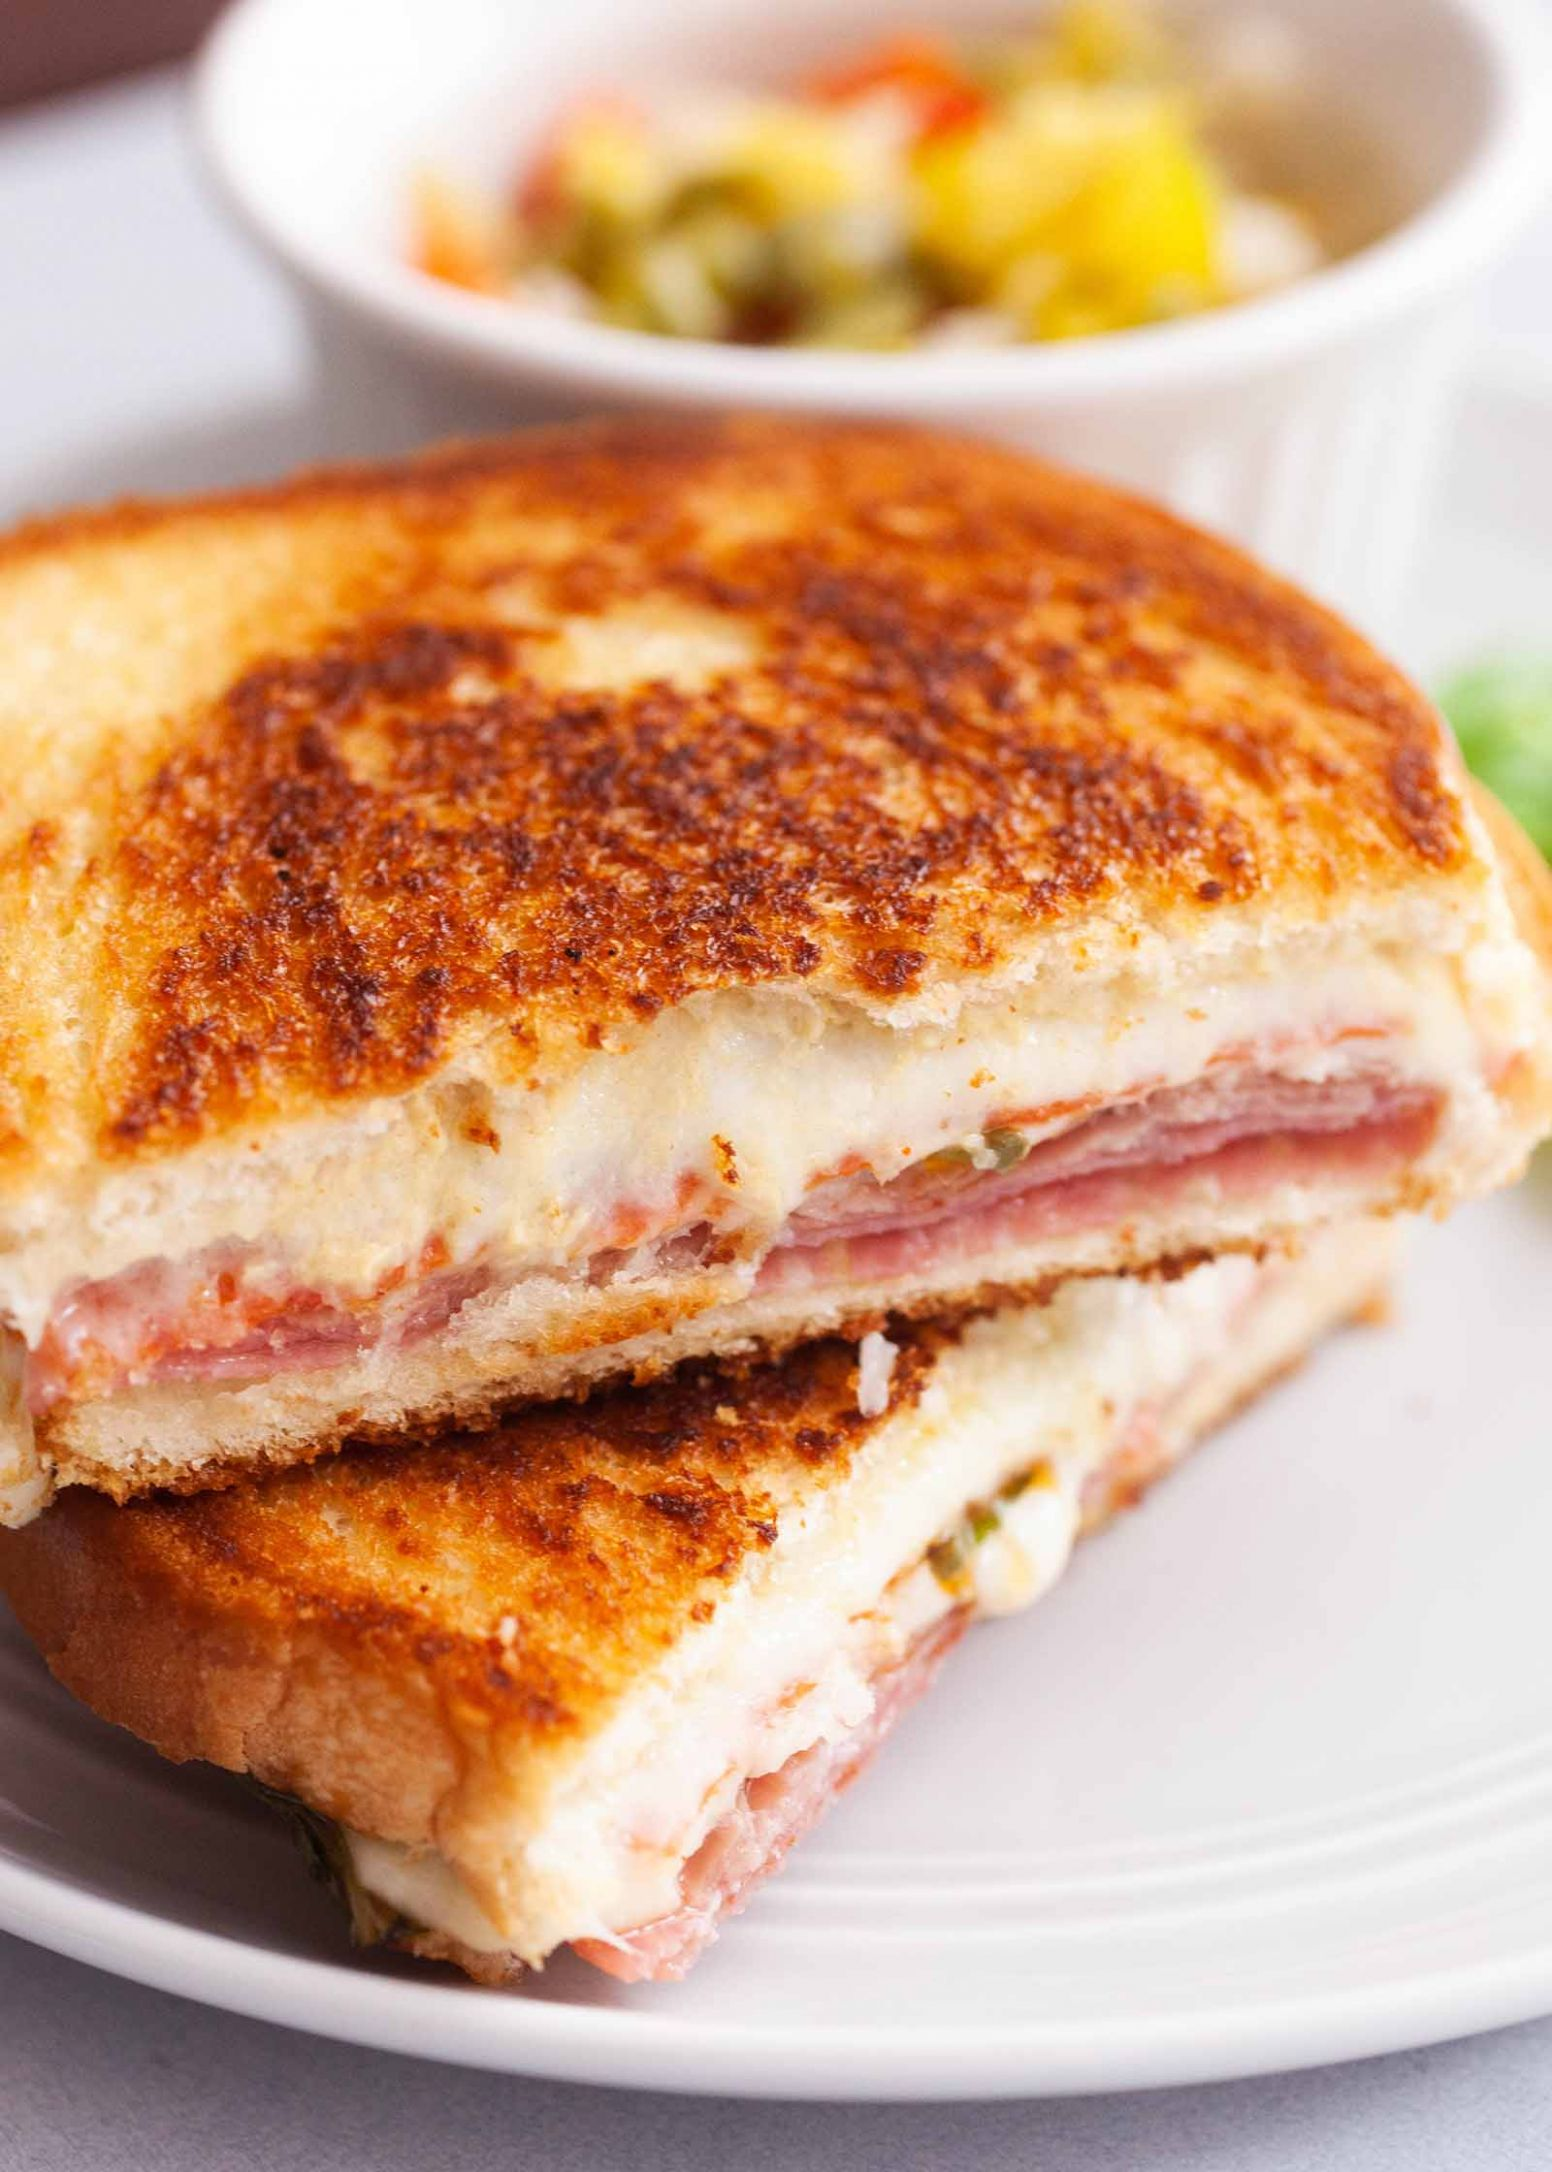 Italian Grilled Cheese Sandwiches - Sandwich Recipes With Ingredients And Procedure